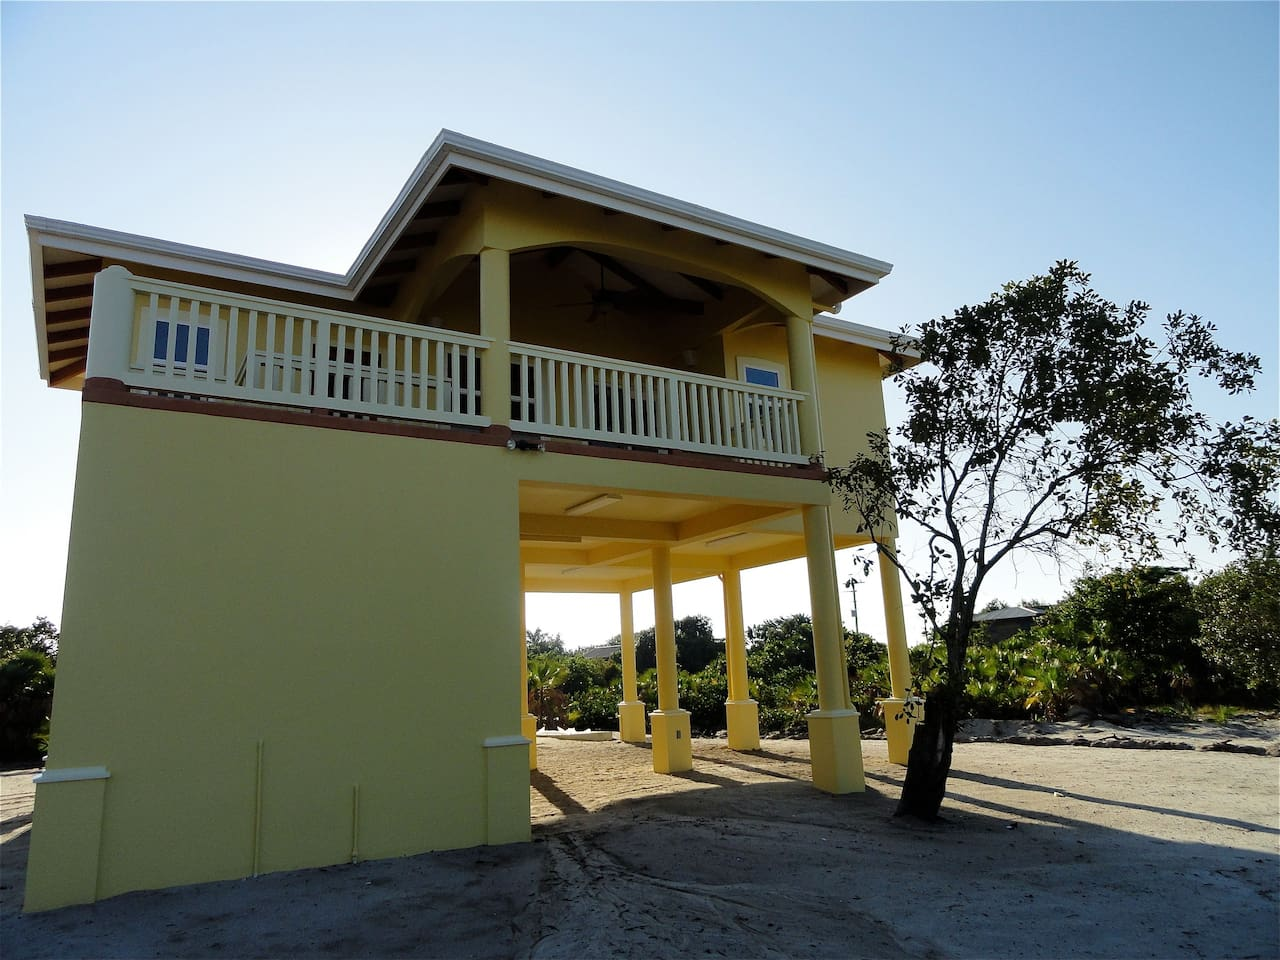 Welcome! Make yourself at home in this brand new house overlooking the Placencia Lagoon.